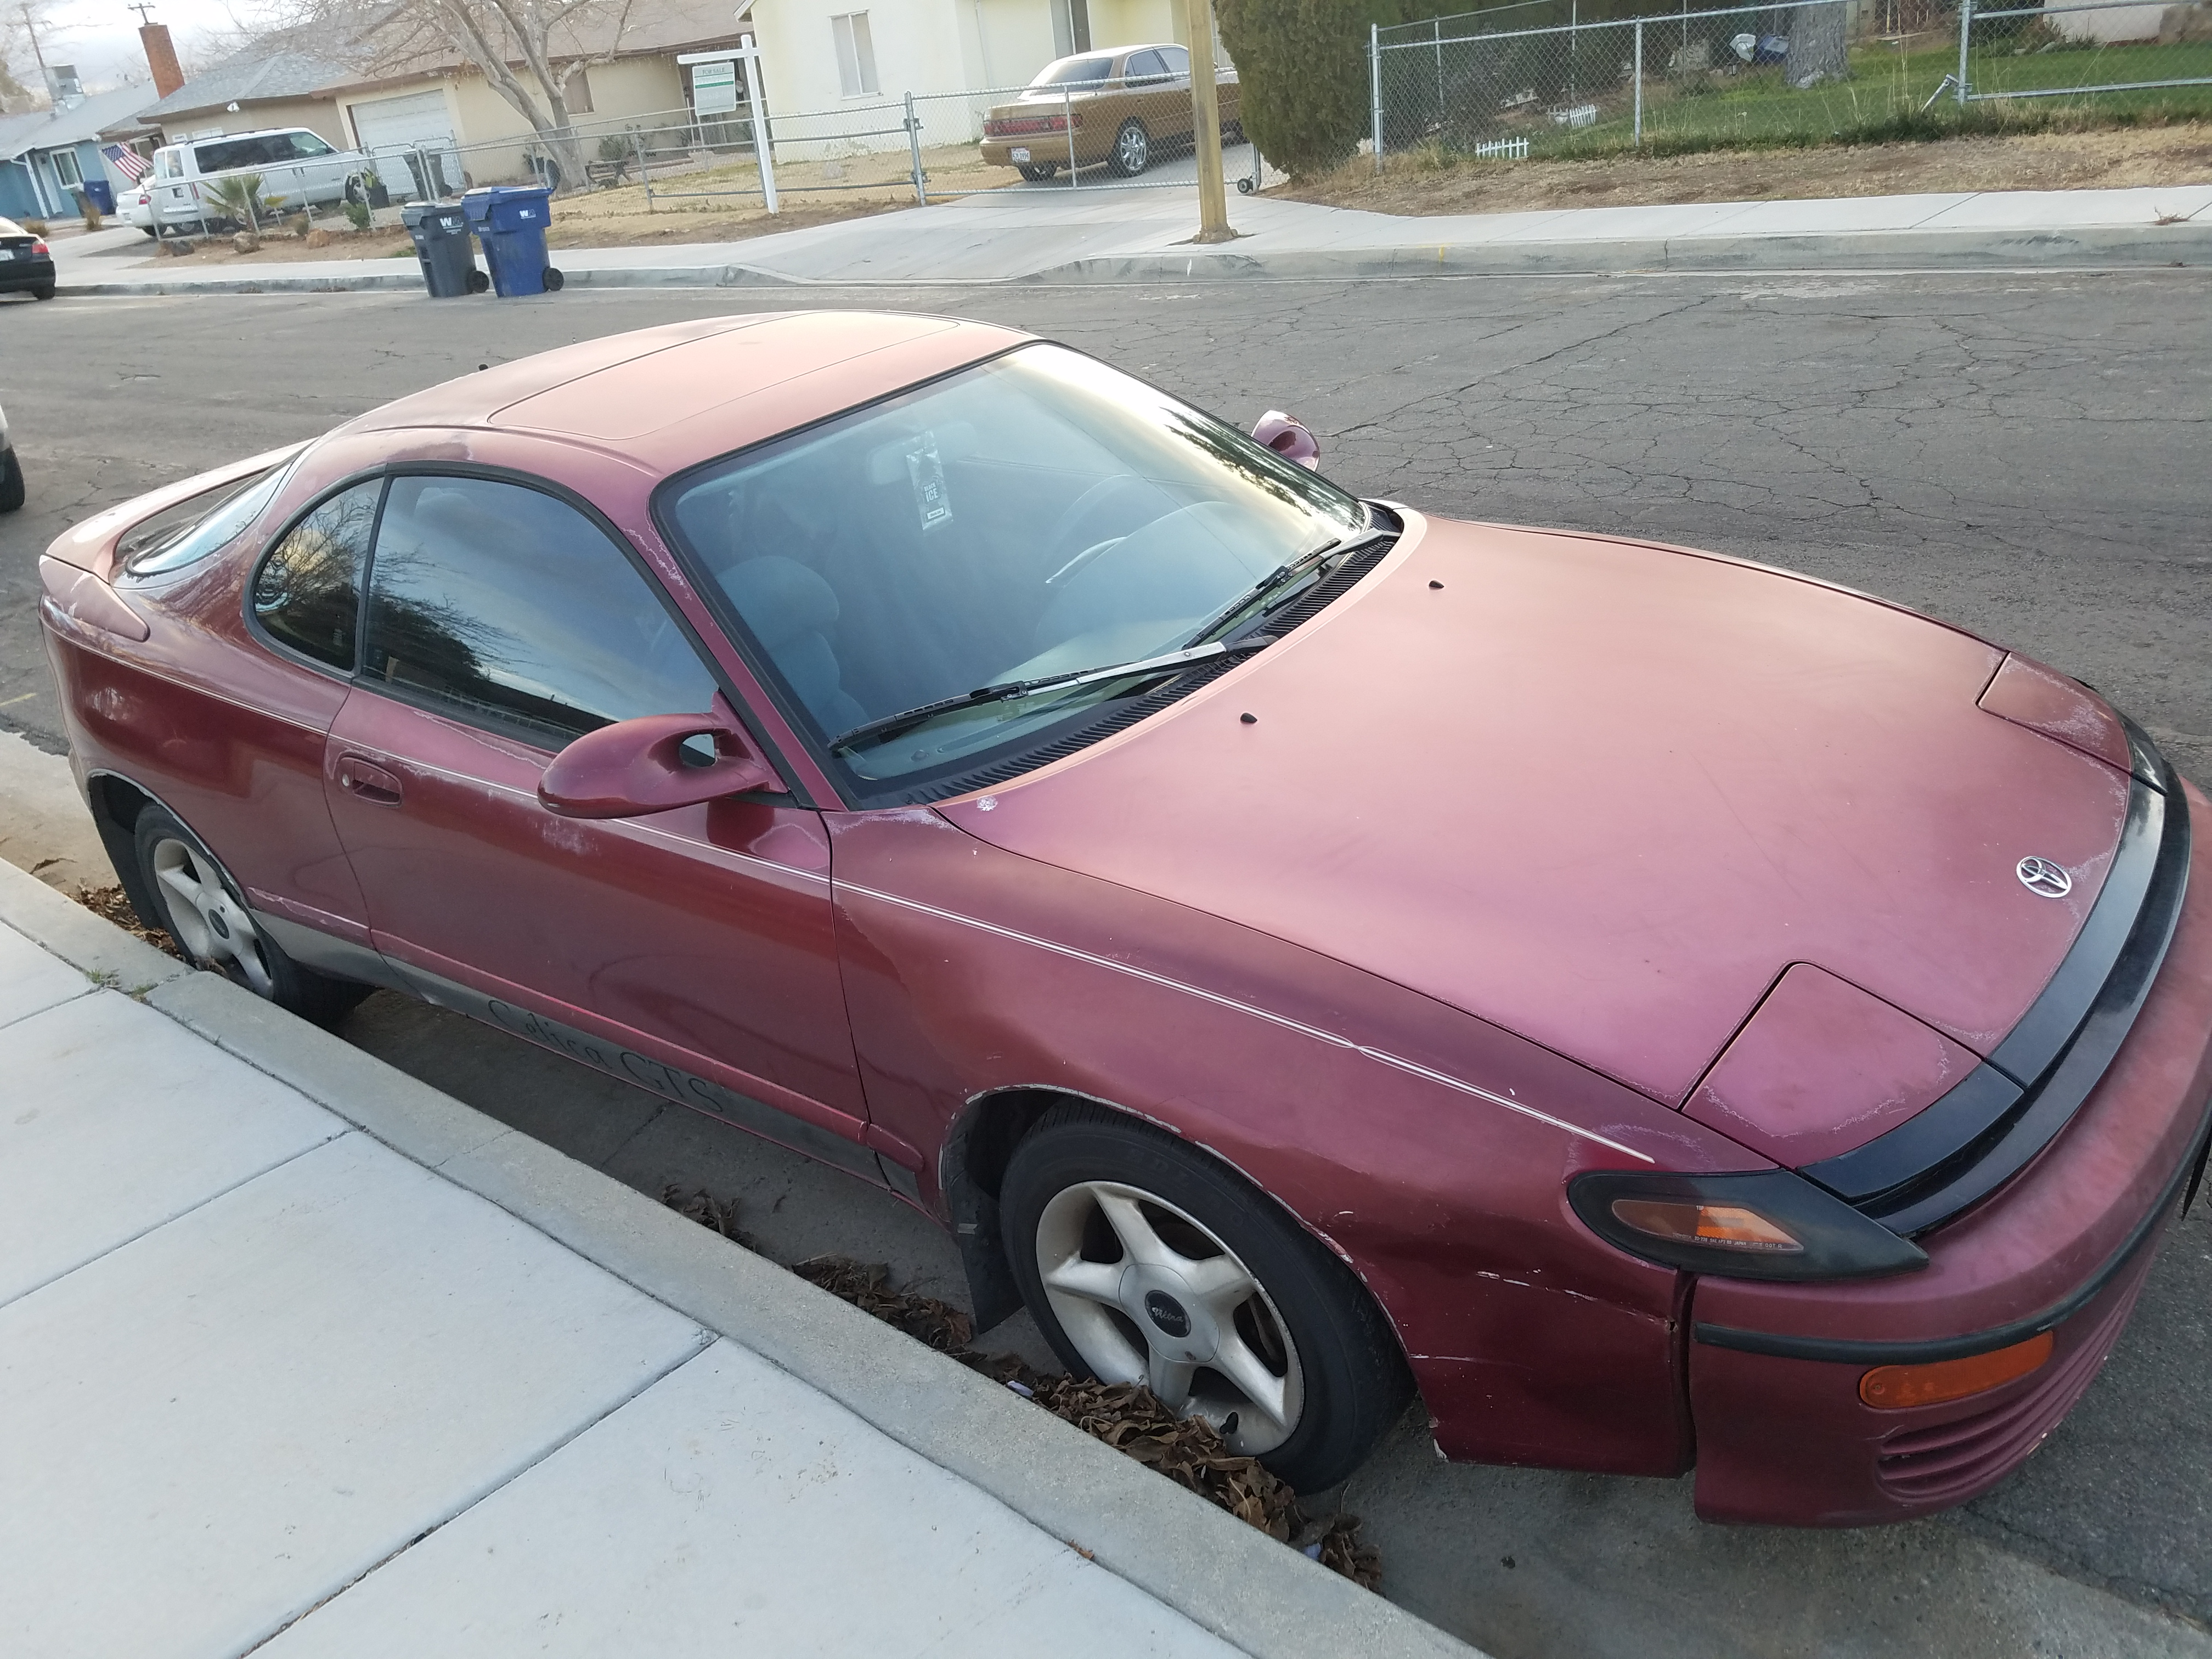 Cash for Cars Dayton, OH | Sell Your Junk Car | The Clunker Junker